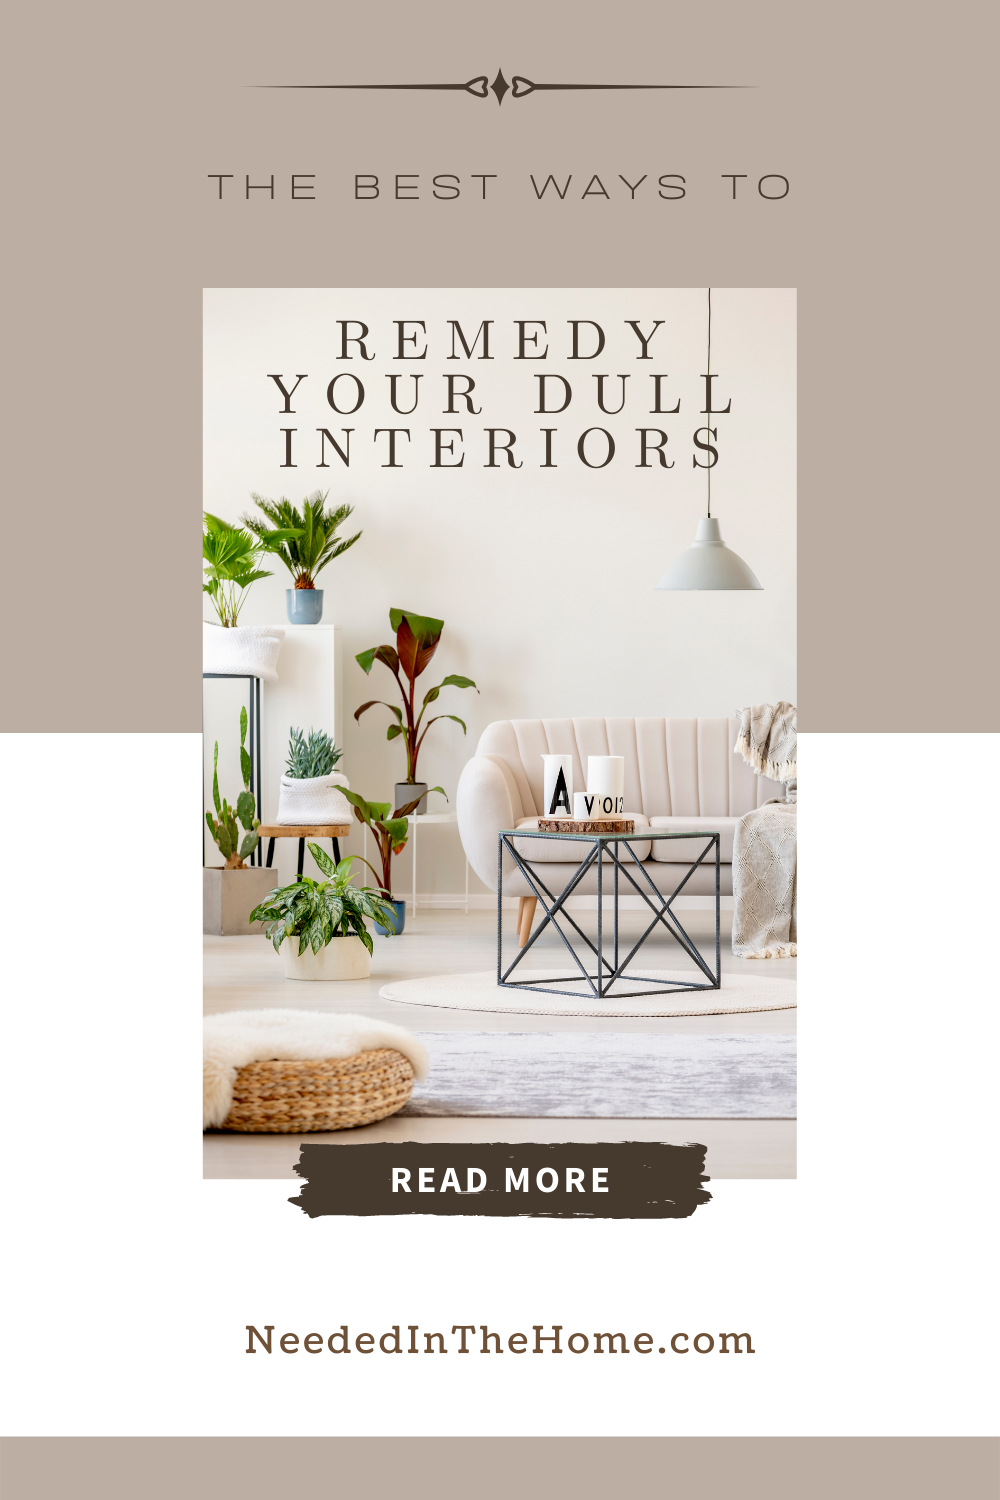 pinterest-pin-description the best ways to remedy your dull interiors read more button neededinthehome living room neutral colors pop of plant color